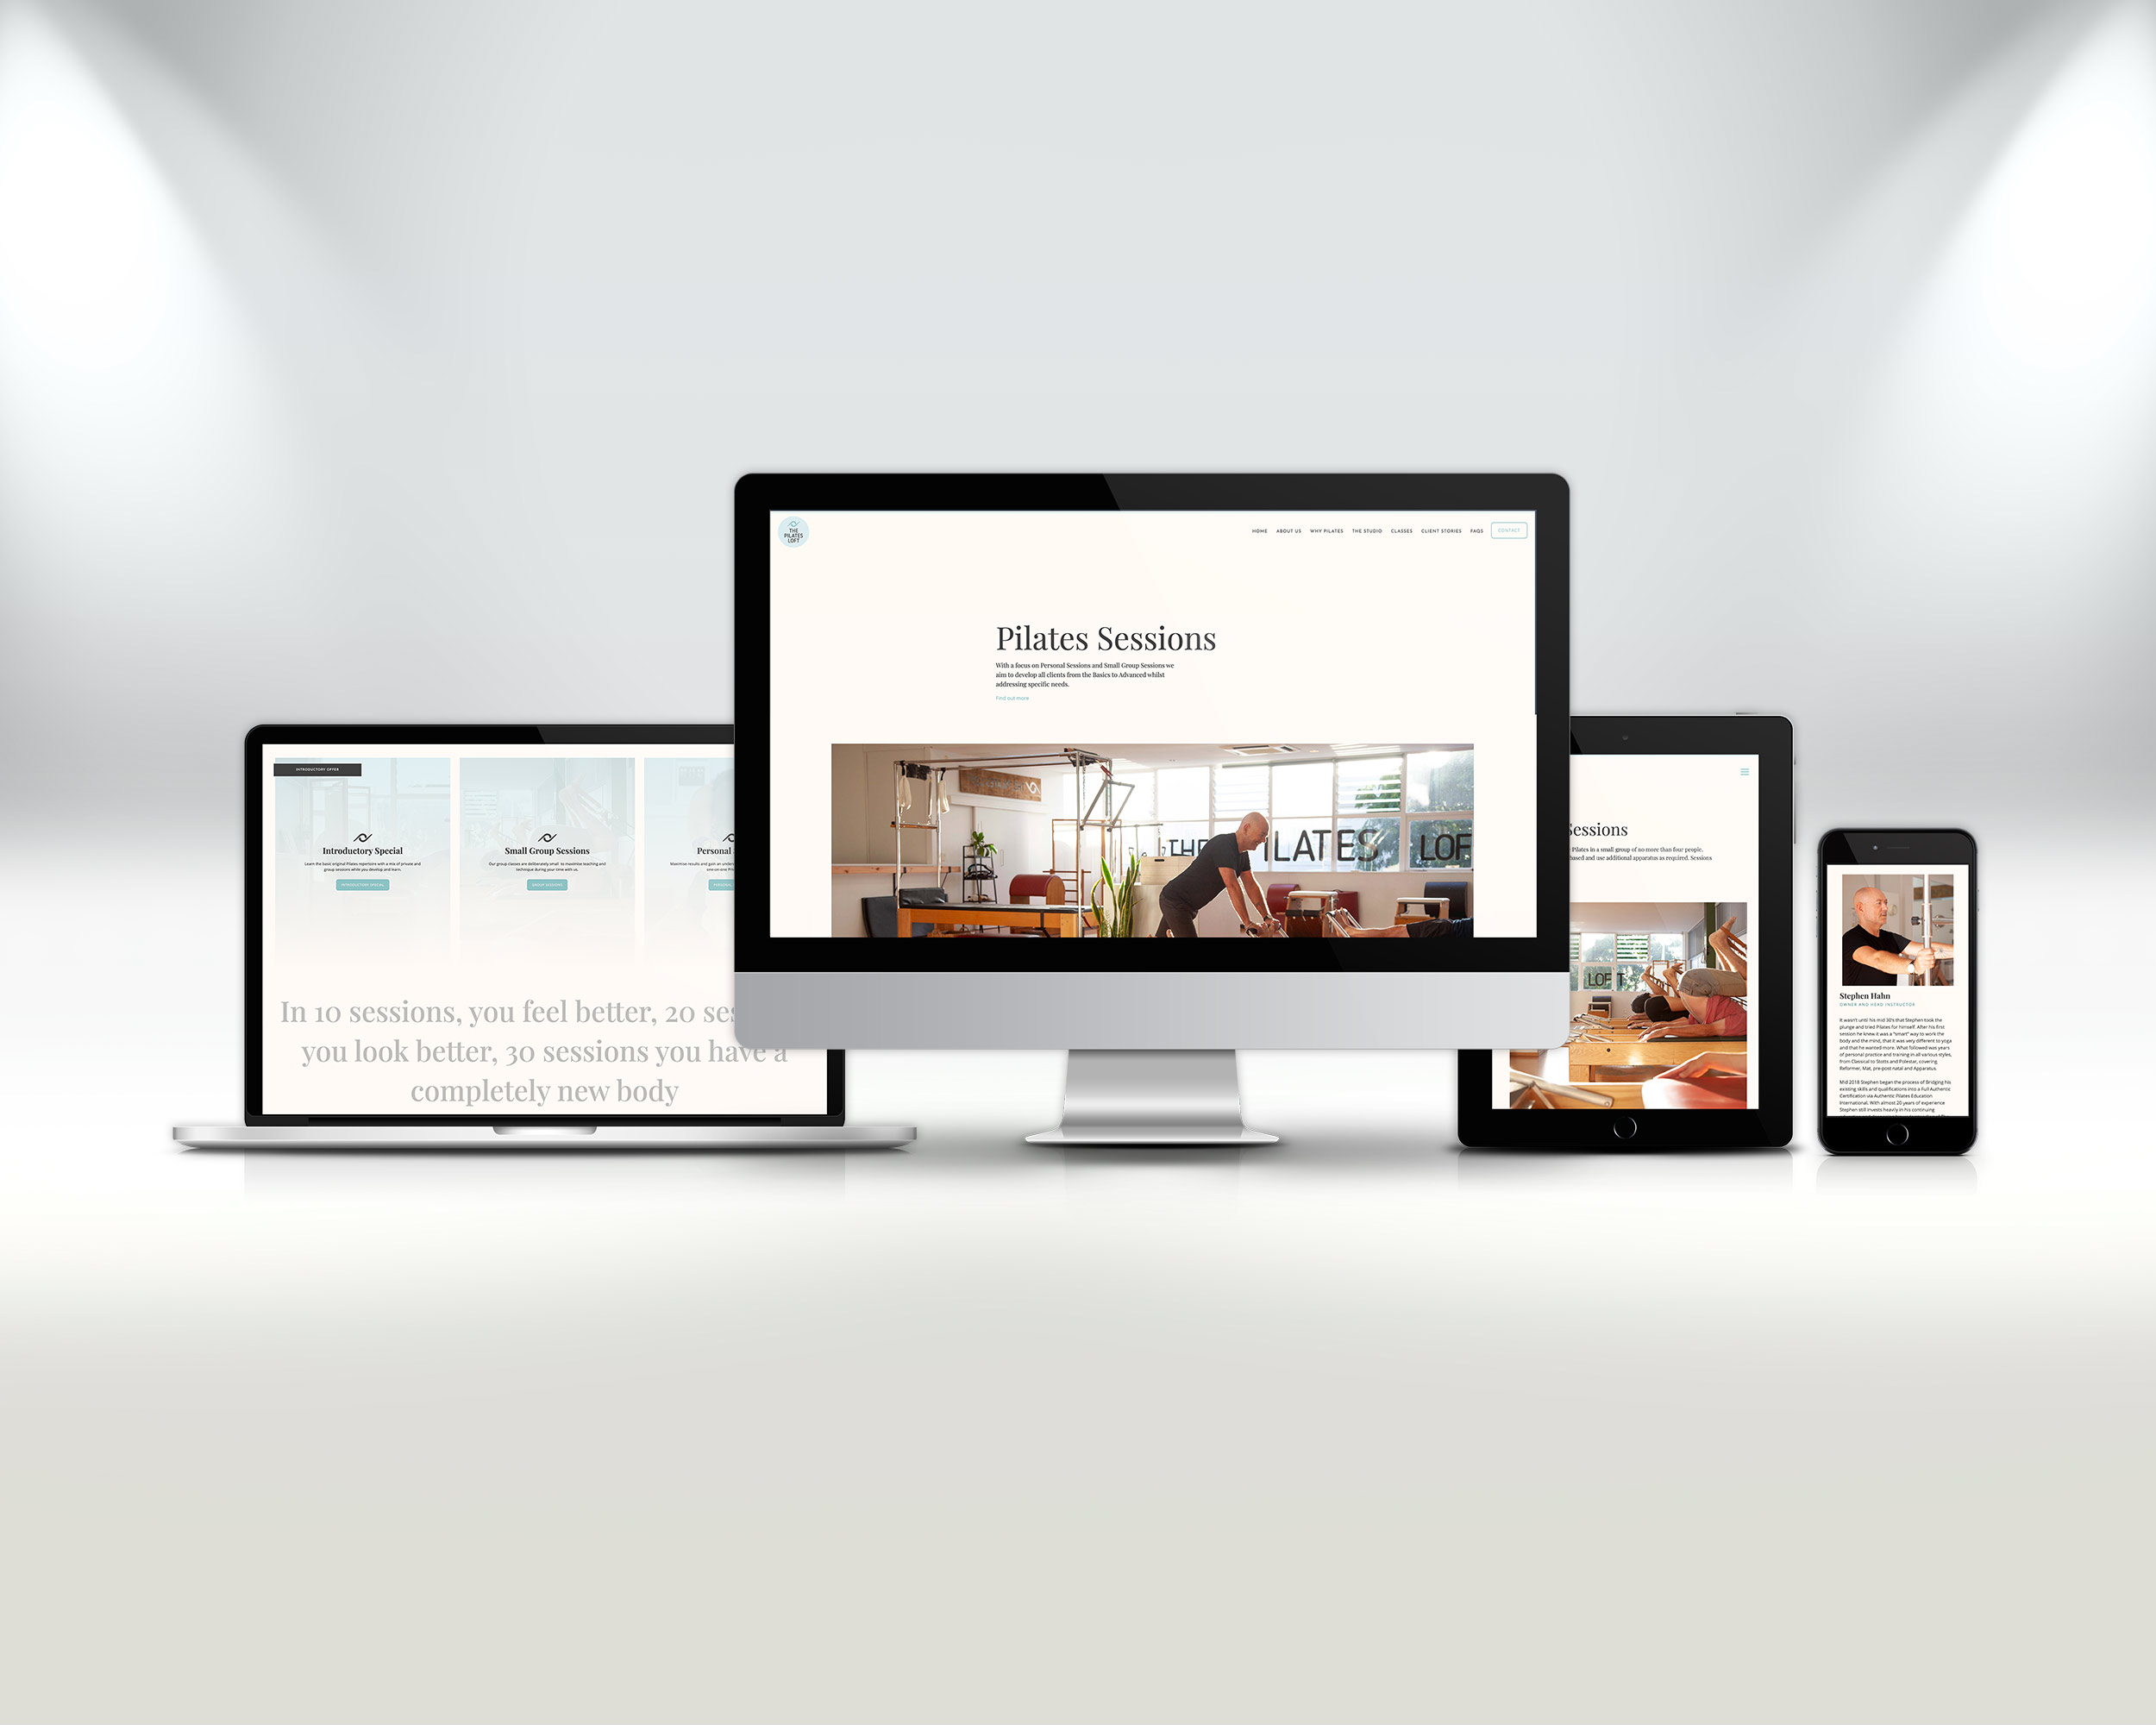 A selection of screens from the new Pilates Loft website to showcase the responsive changes